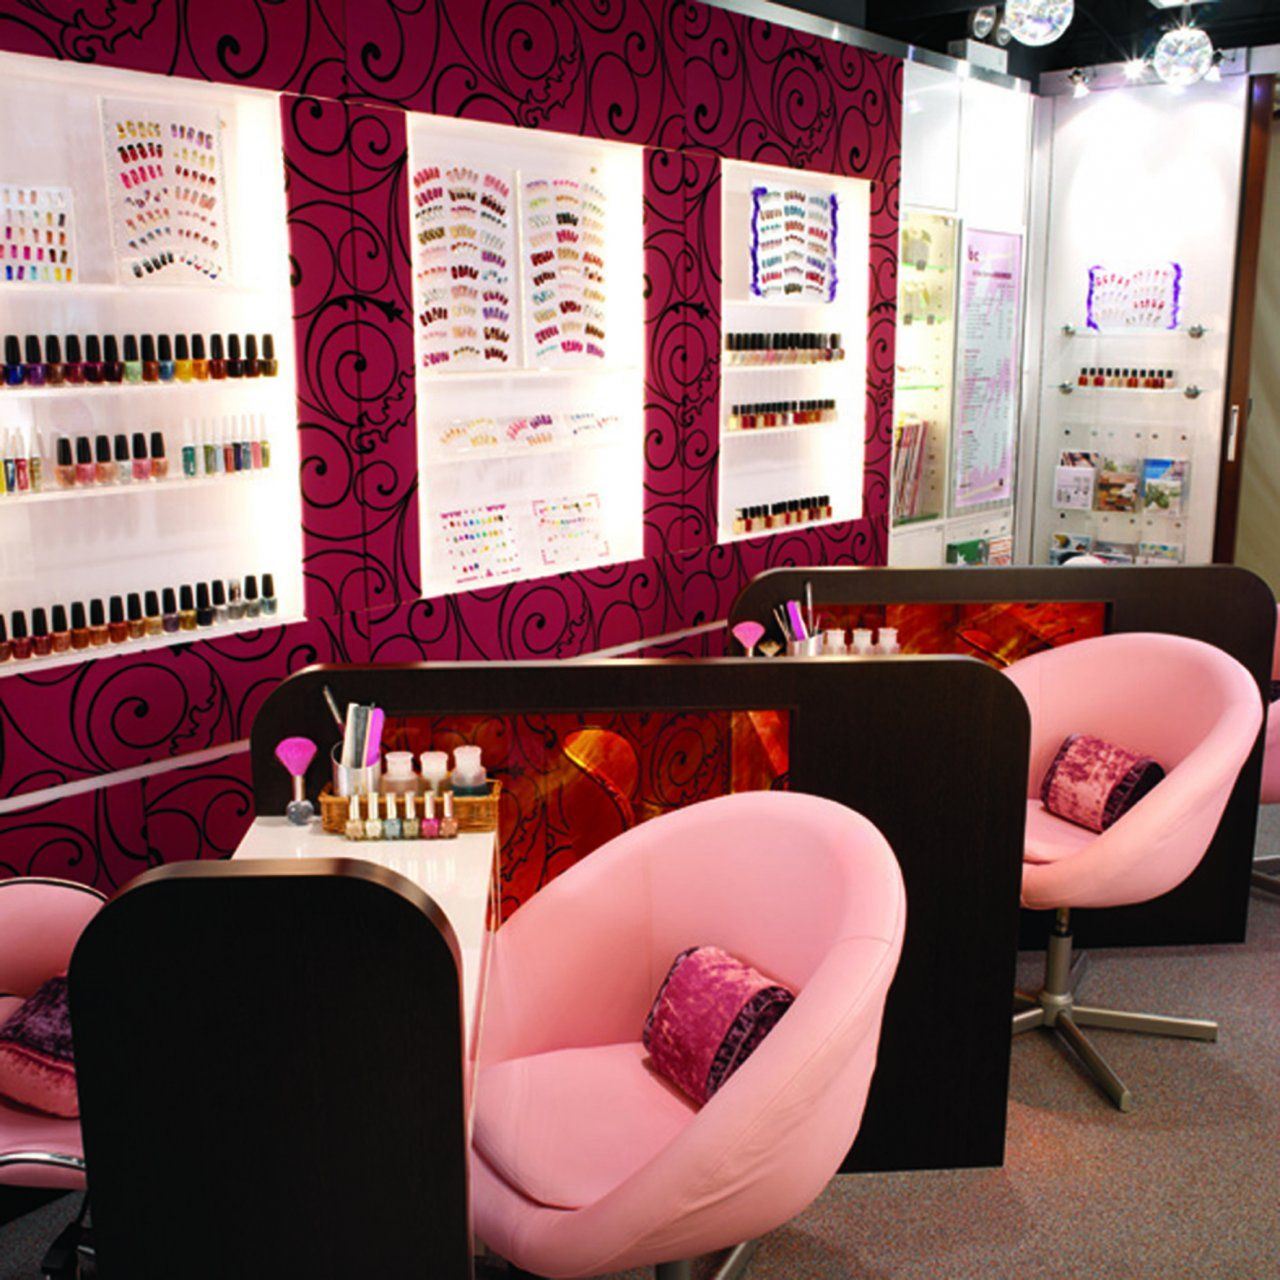 Nail Salon Interior Design Ideas  Nail salon interior design